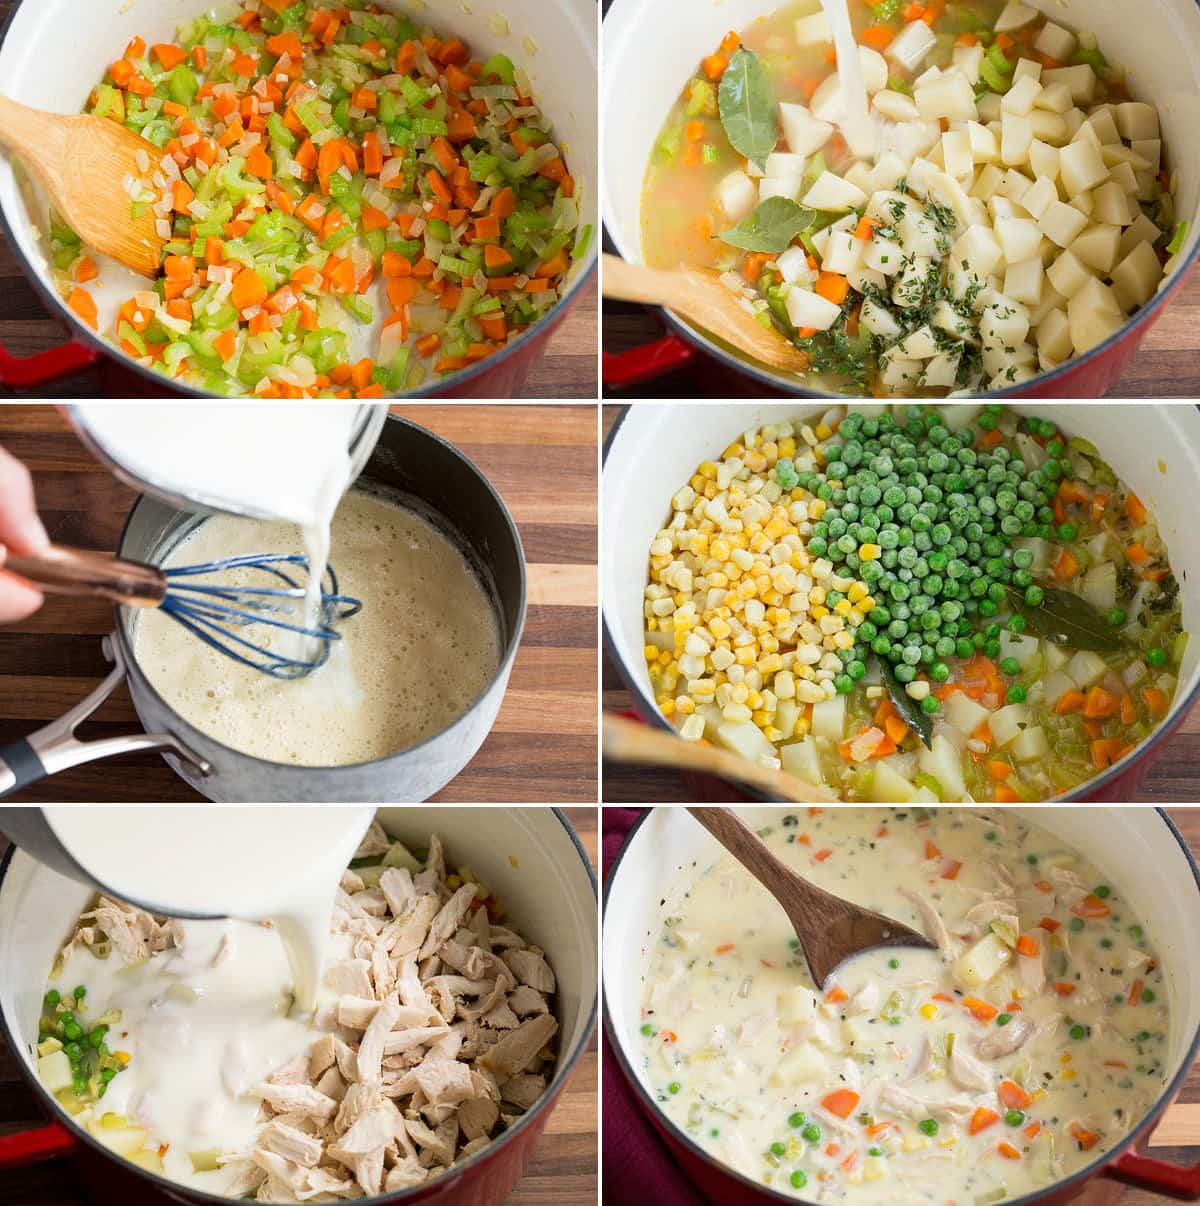 Image showing steps to making chicken pot pie soup in a pot as well as making a white sauce in a saucepan to add to soup.